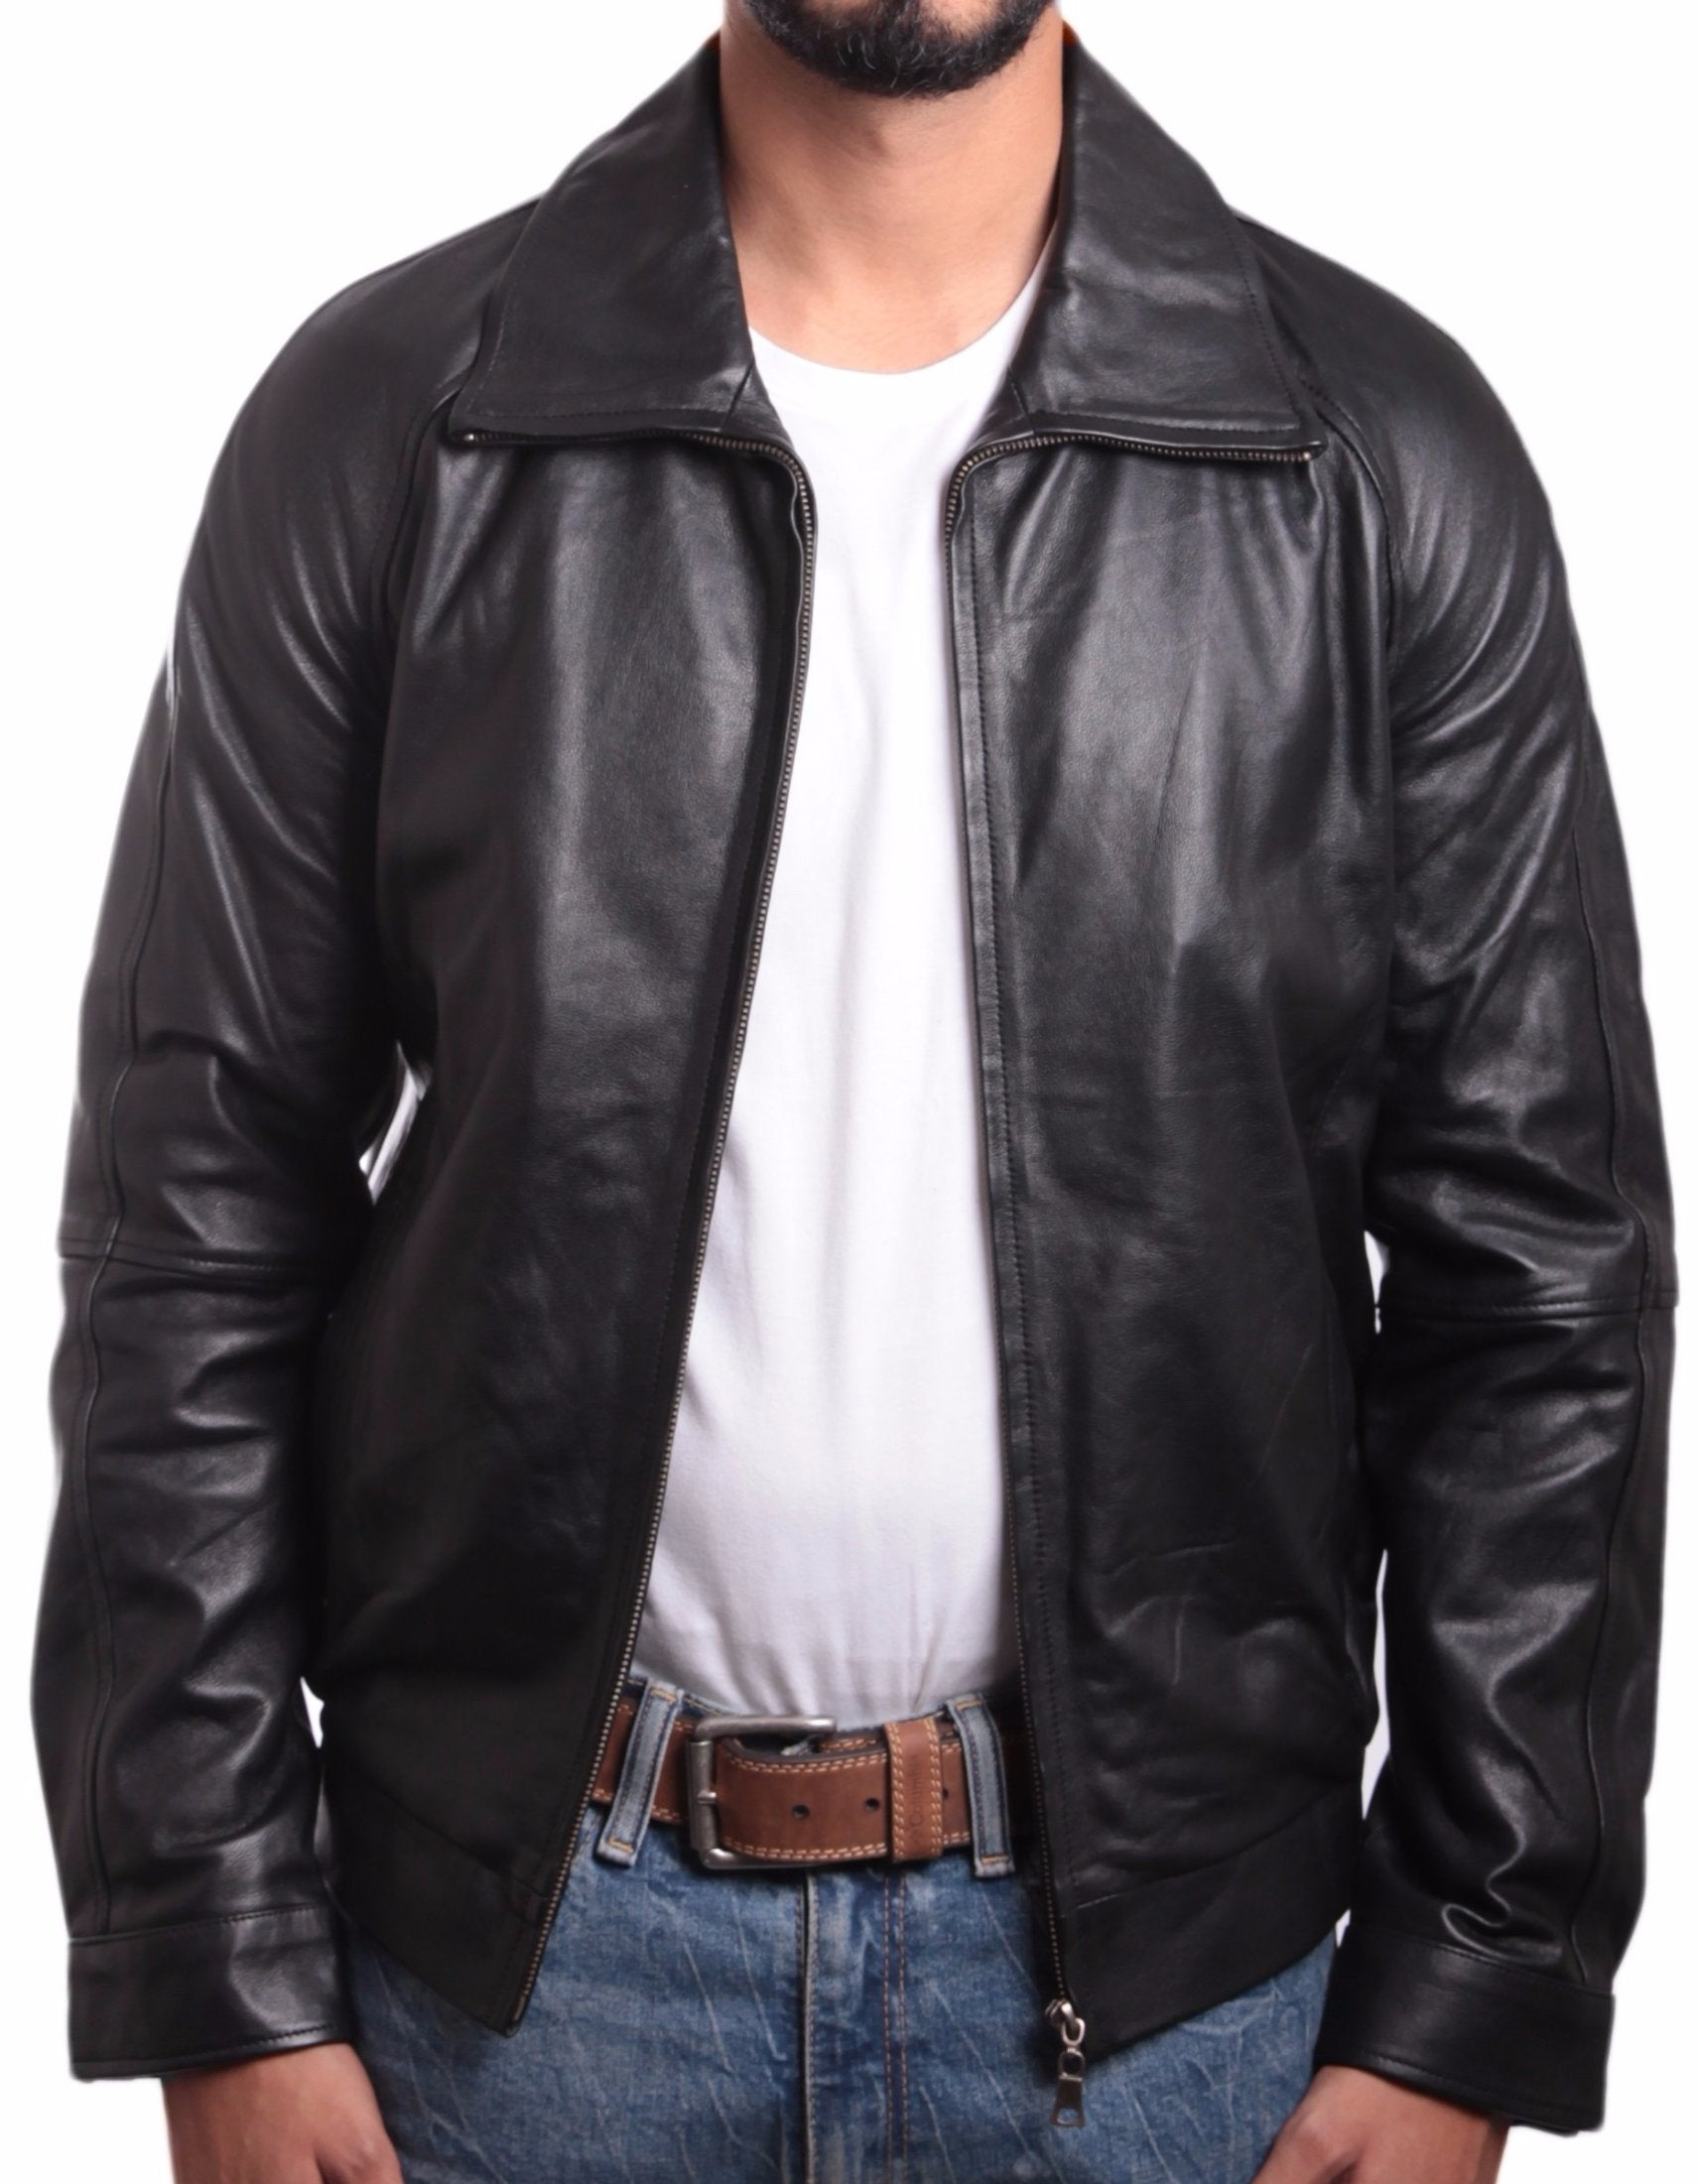 Daily Mens Straight Zip Leather Jacket - fadcloset